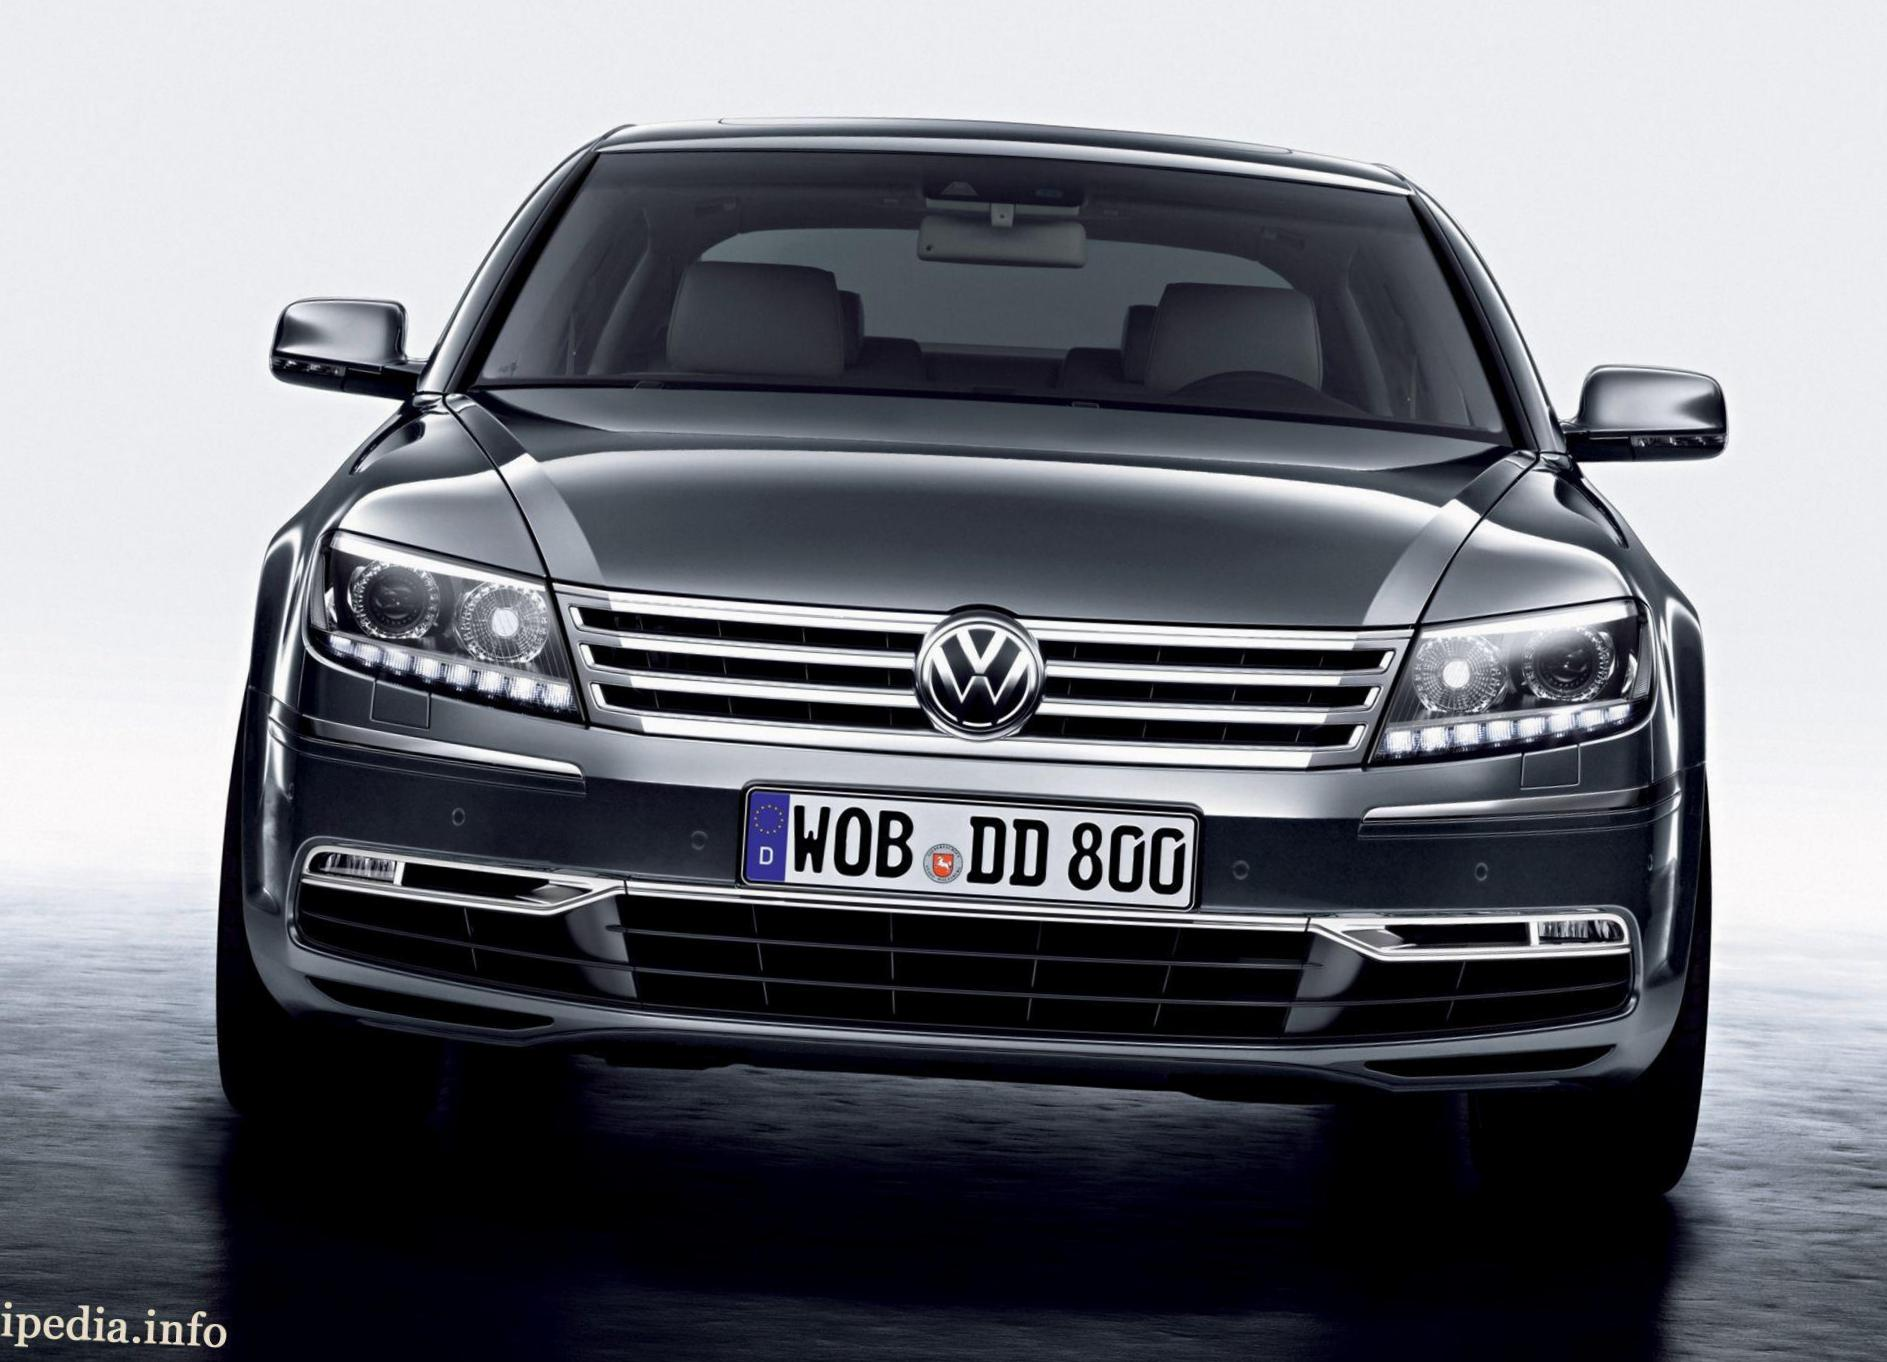 Volkswagen Phaeton Specifications 2009